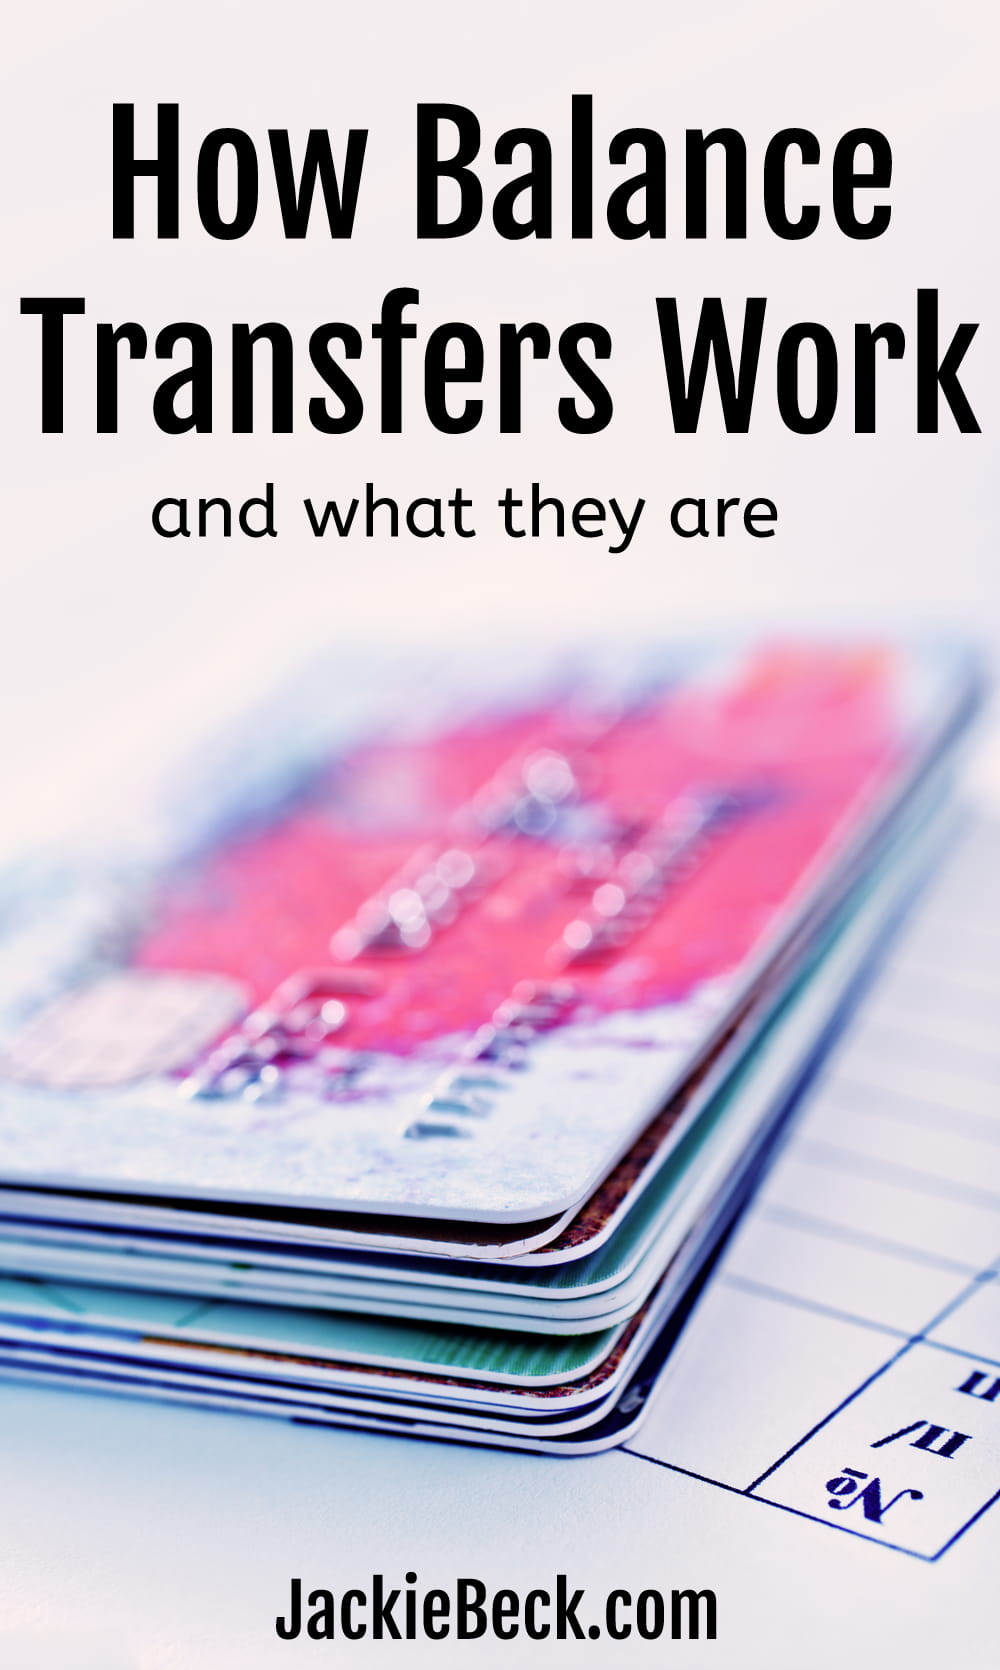 What are balance transfers and how do they work?